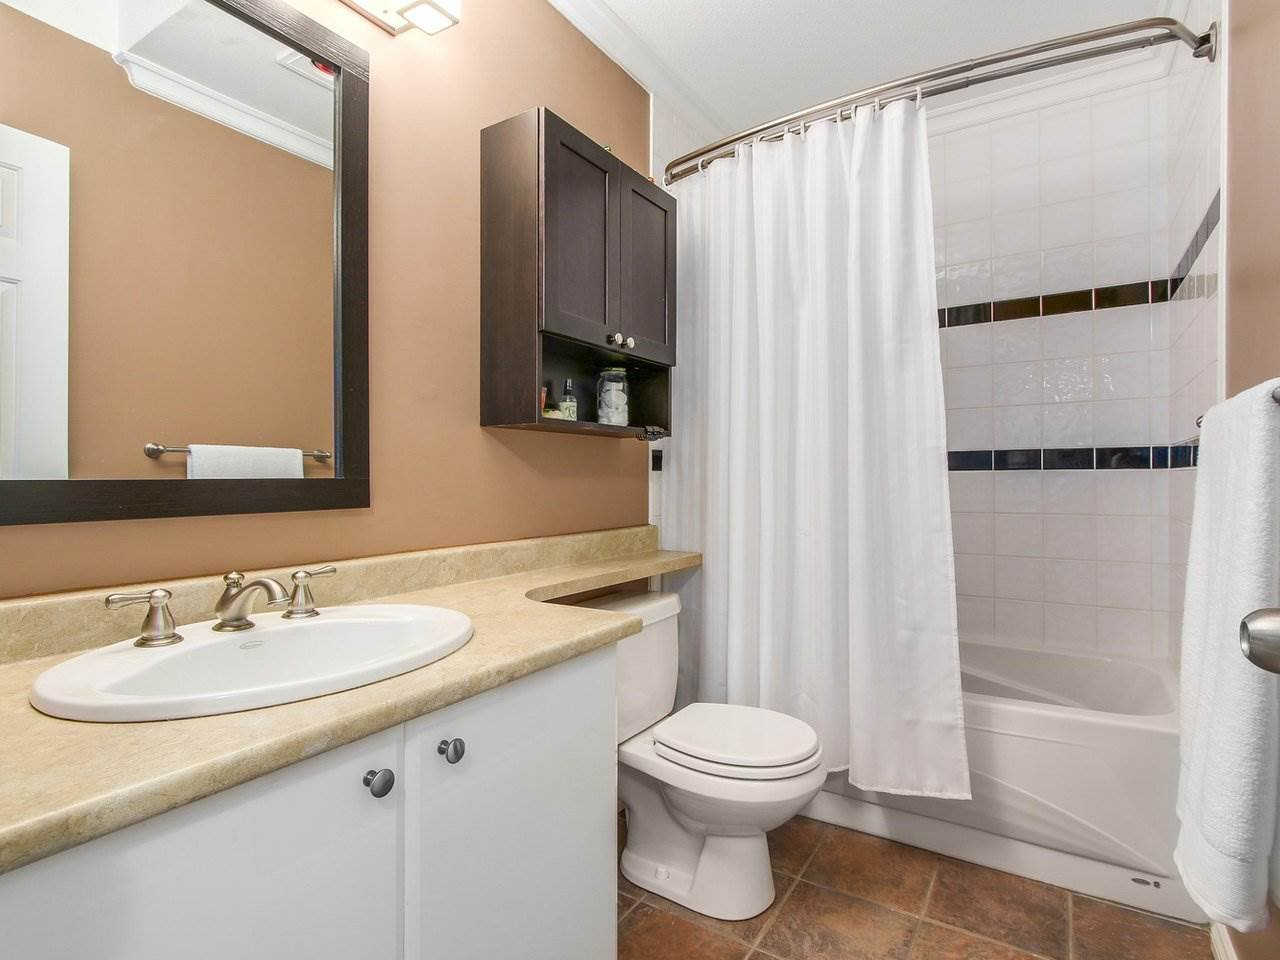 Photo 10: Photos: 304 8120 BENNETT Road in Richmond: Brighouse South Condo for sale : MLS®# R2191205